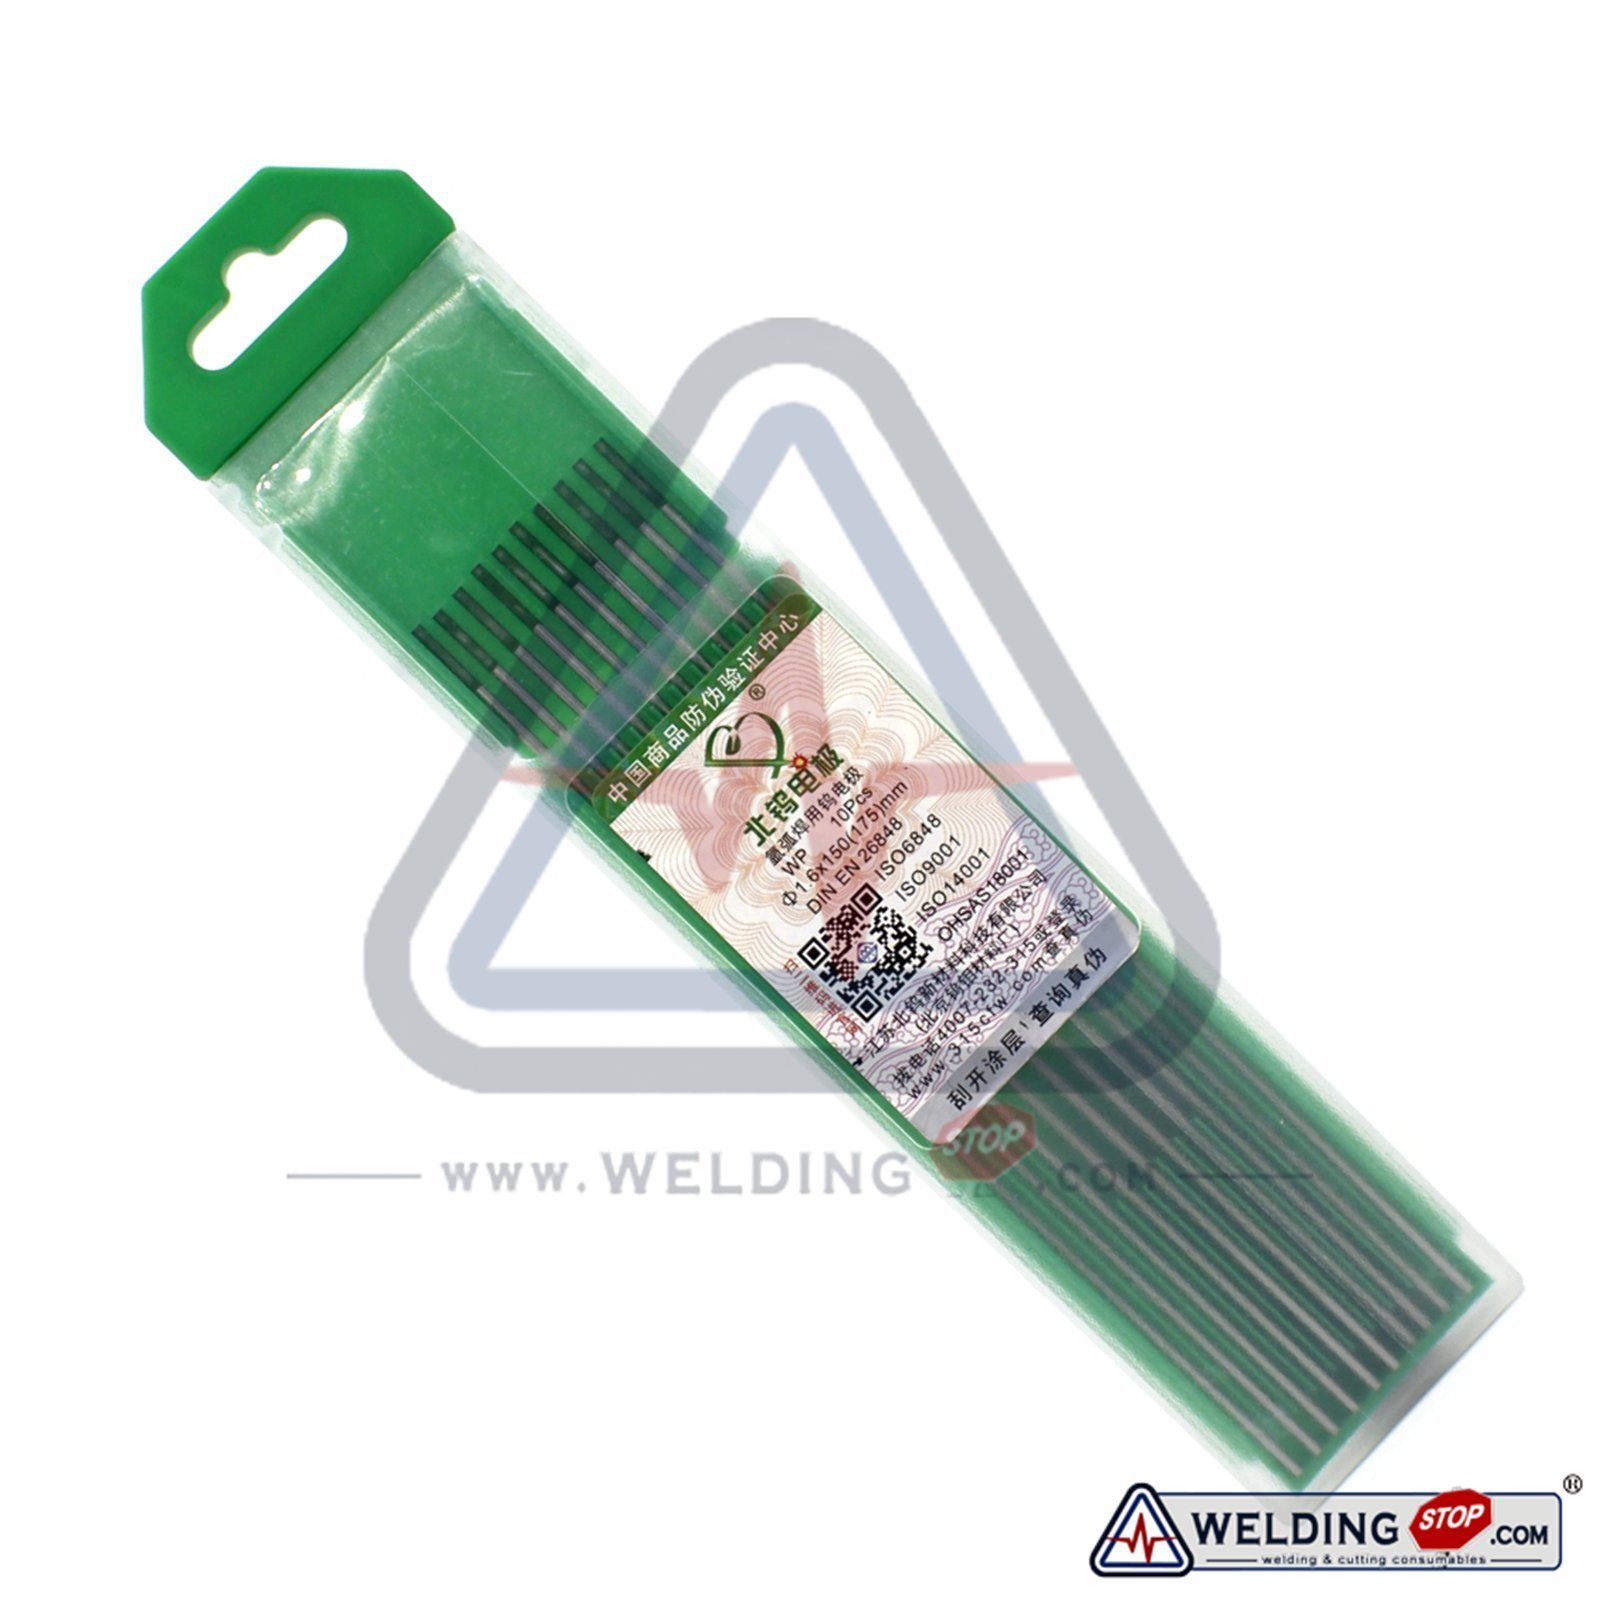 WP20 TIG Welding Pure Tungsten Electrode 1.6 X 150mm 1/16 X 6 Green PK/10 the rolling stones the rolling stones dirty work